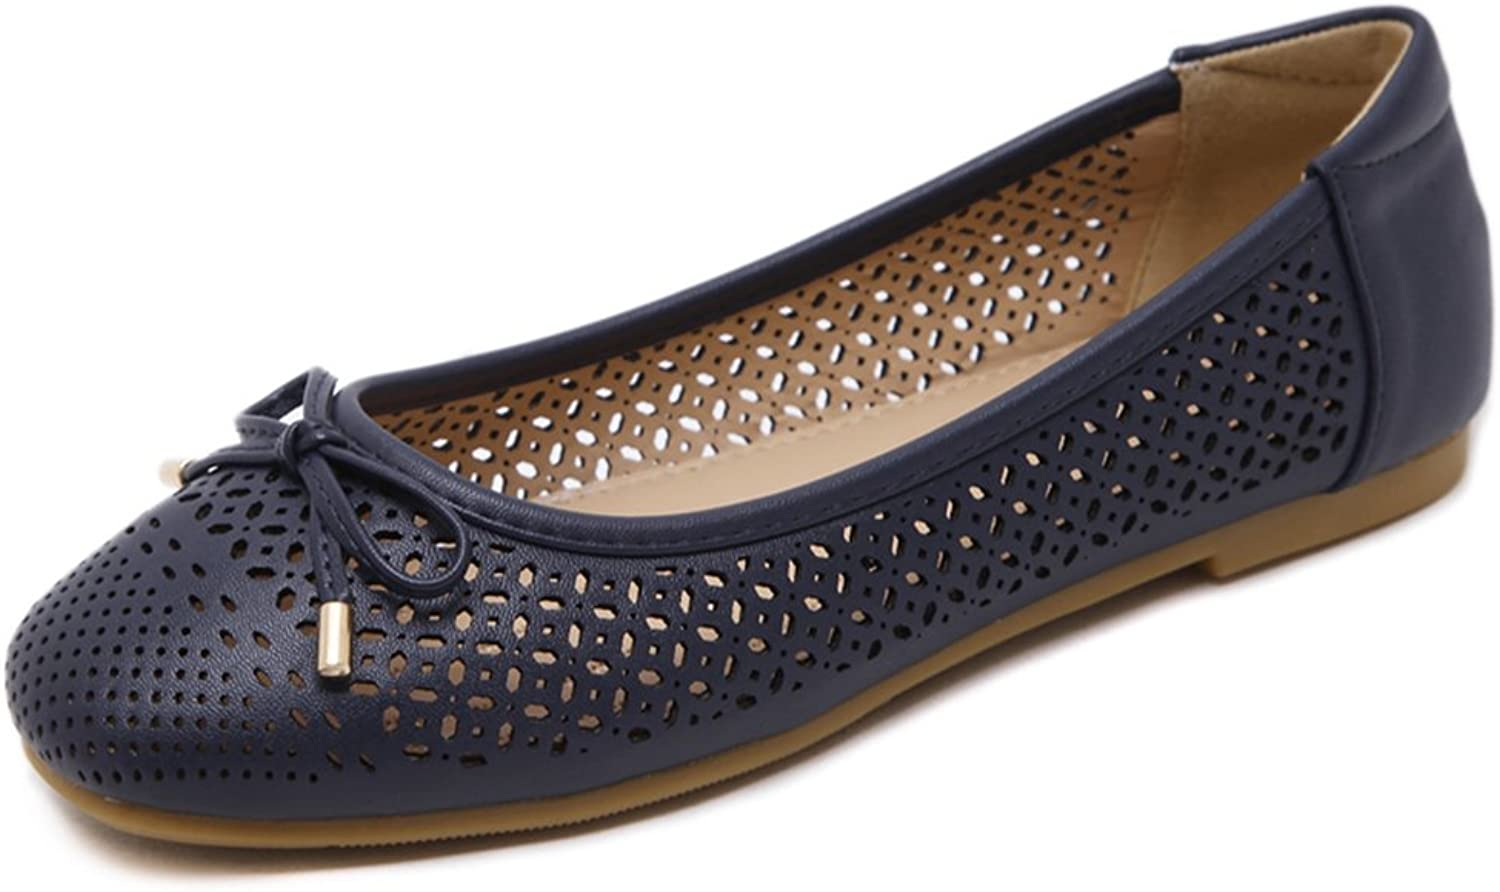 Giles Jones Women's Soft Flats Hollow Slip On Loafers shoes Breathable